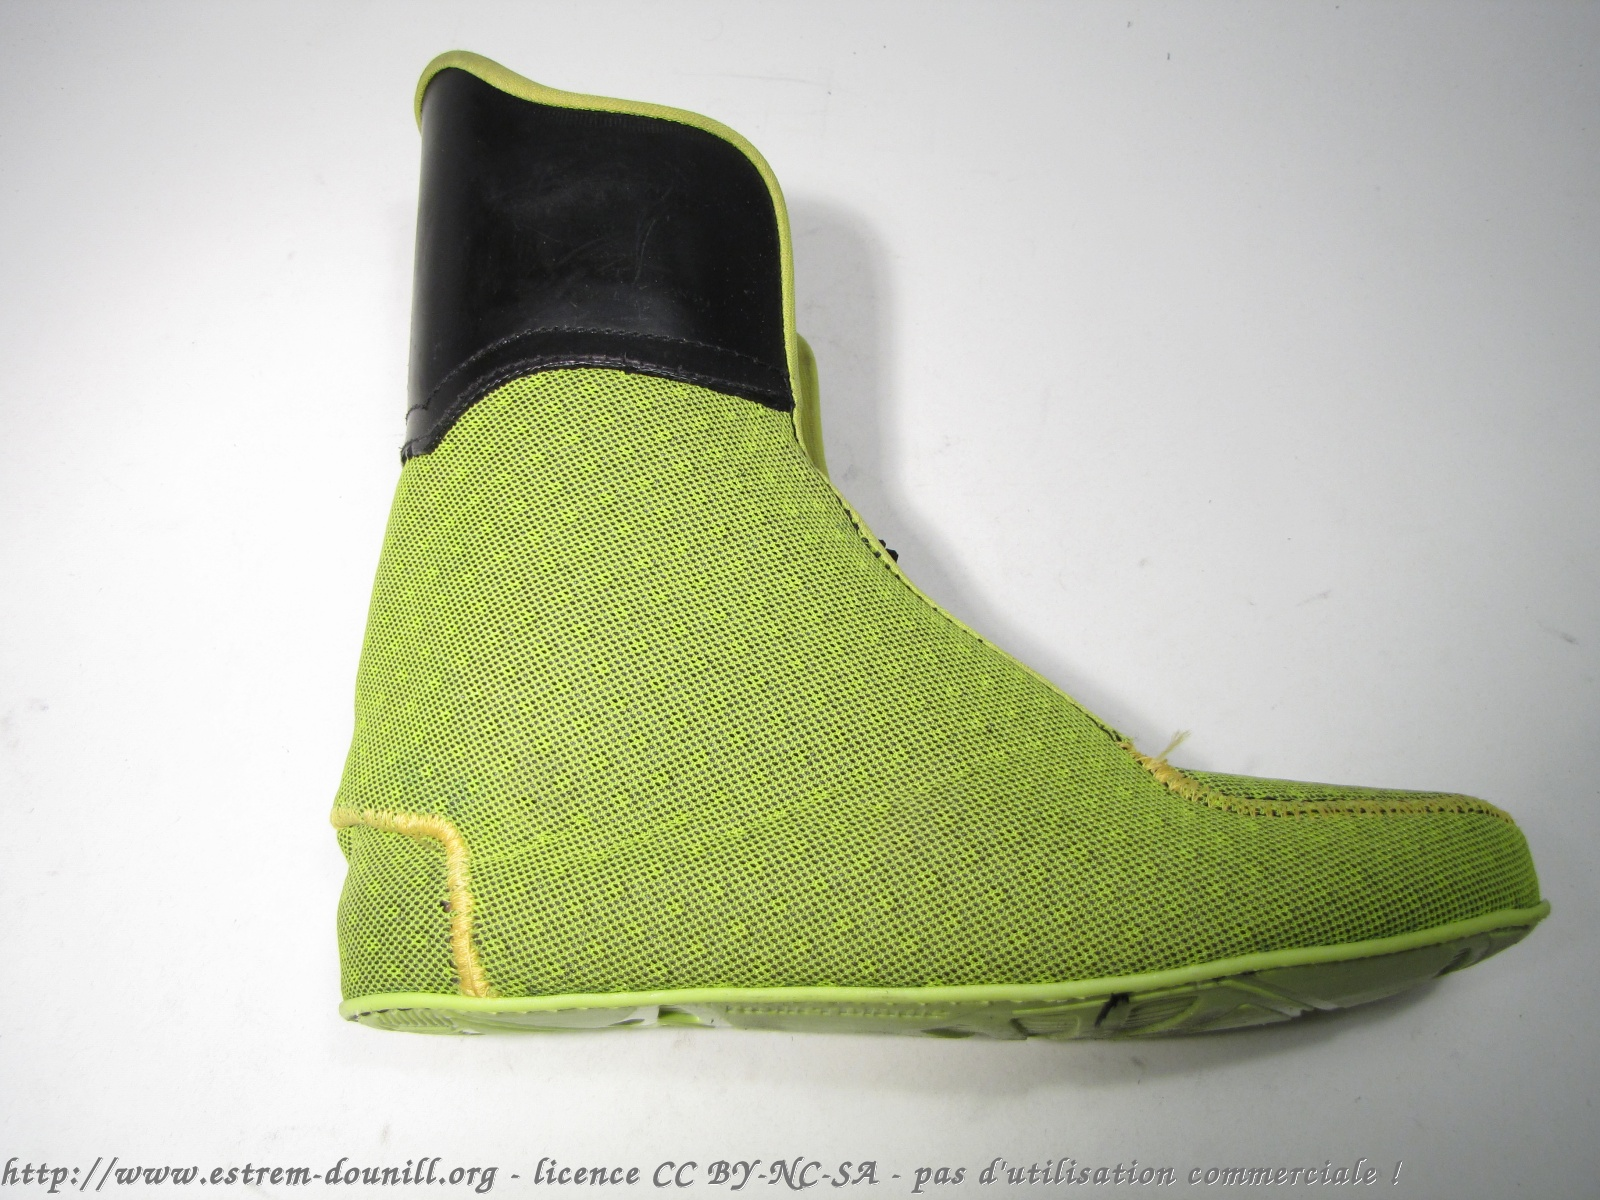 rollerblade_fusion_mx__chausson_exterieur